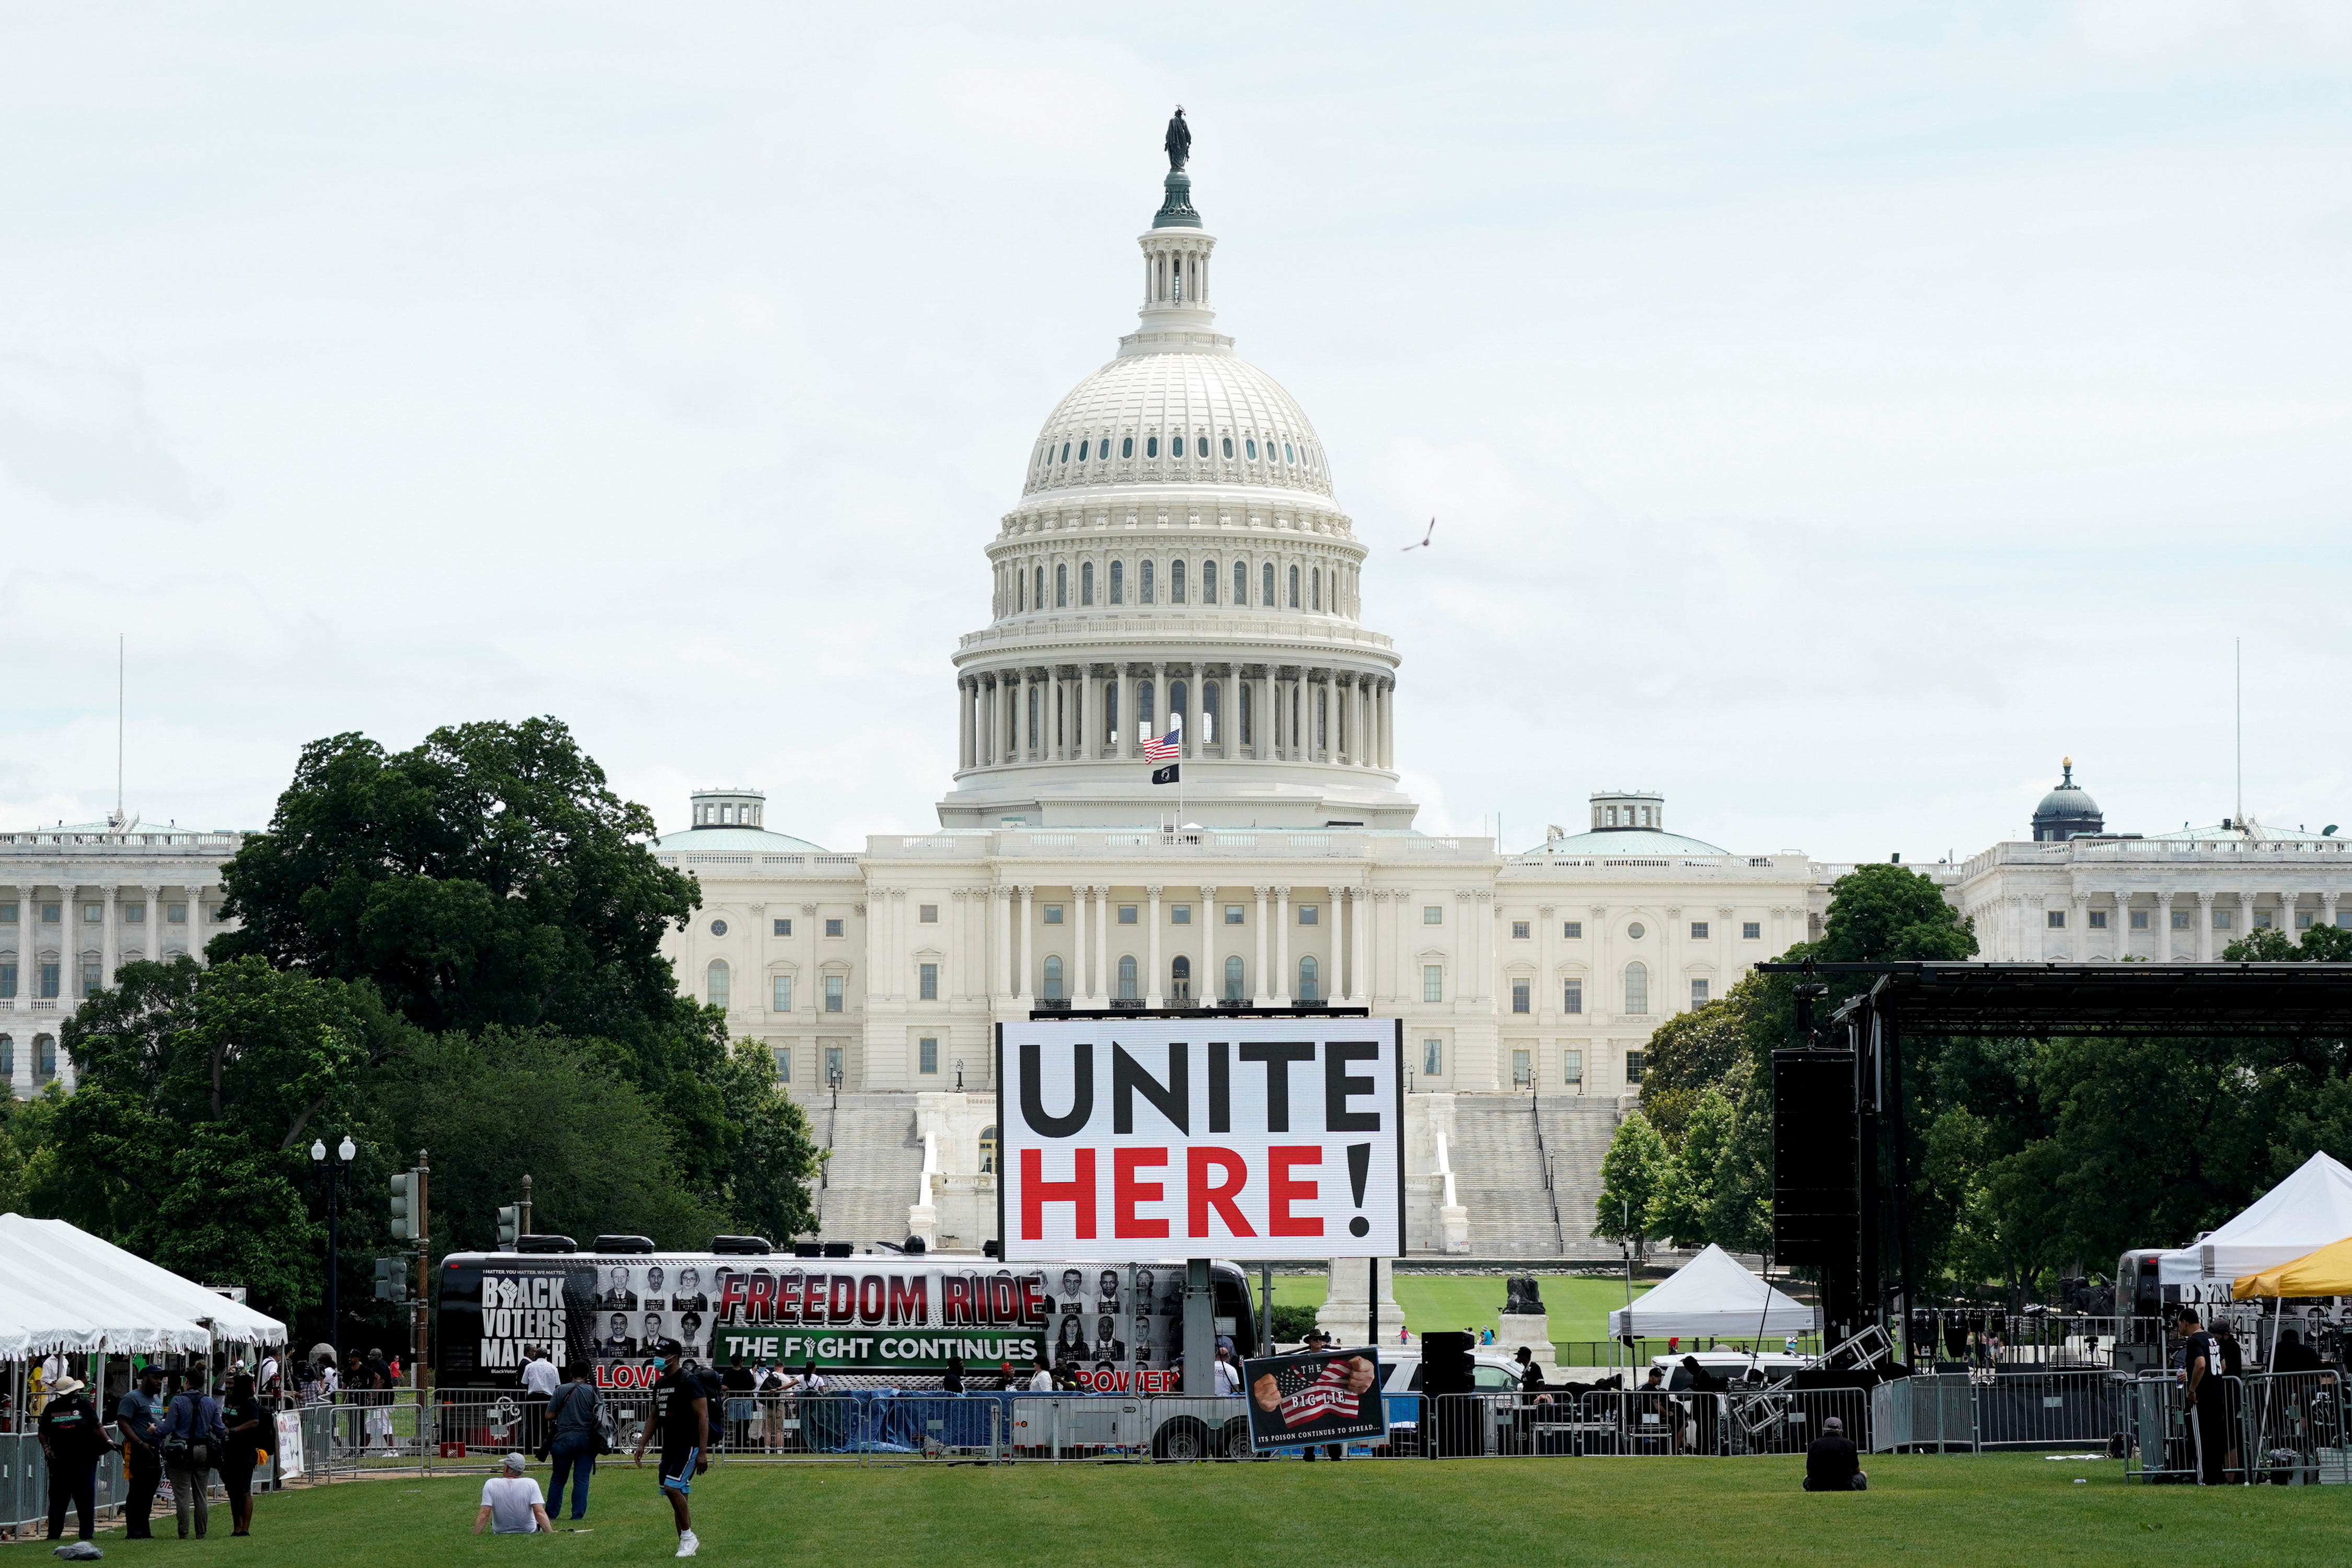 A Freedom Ride for Voting Rights 2021 bus is seen in front of the U.S. Capitol building before the start of a rally in support of District of Columbia (DC) statehood and voting rights on the National Mall in Washington, DC, U.S. June 26, 2021.  REUTERS/Elizabeth Frantz